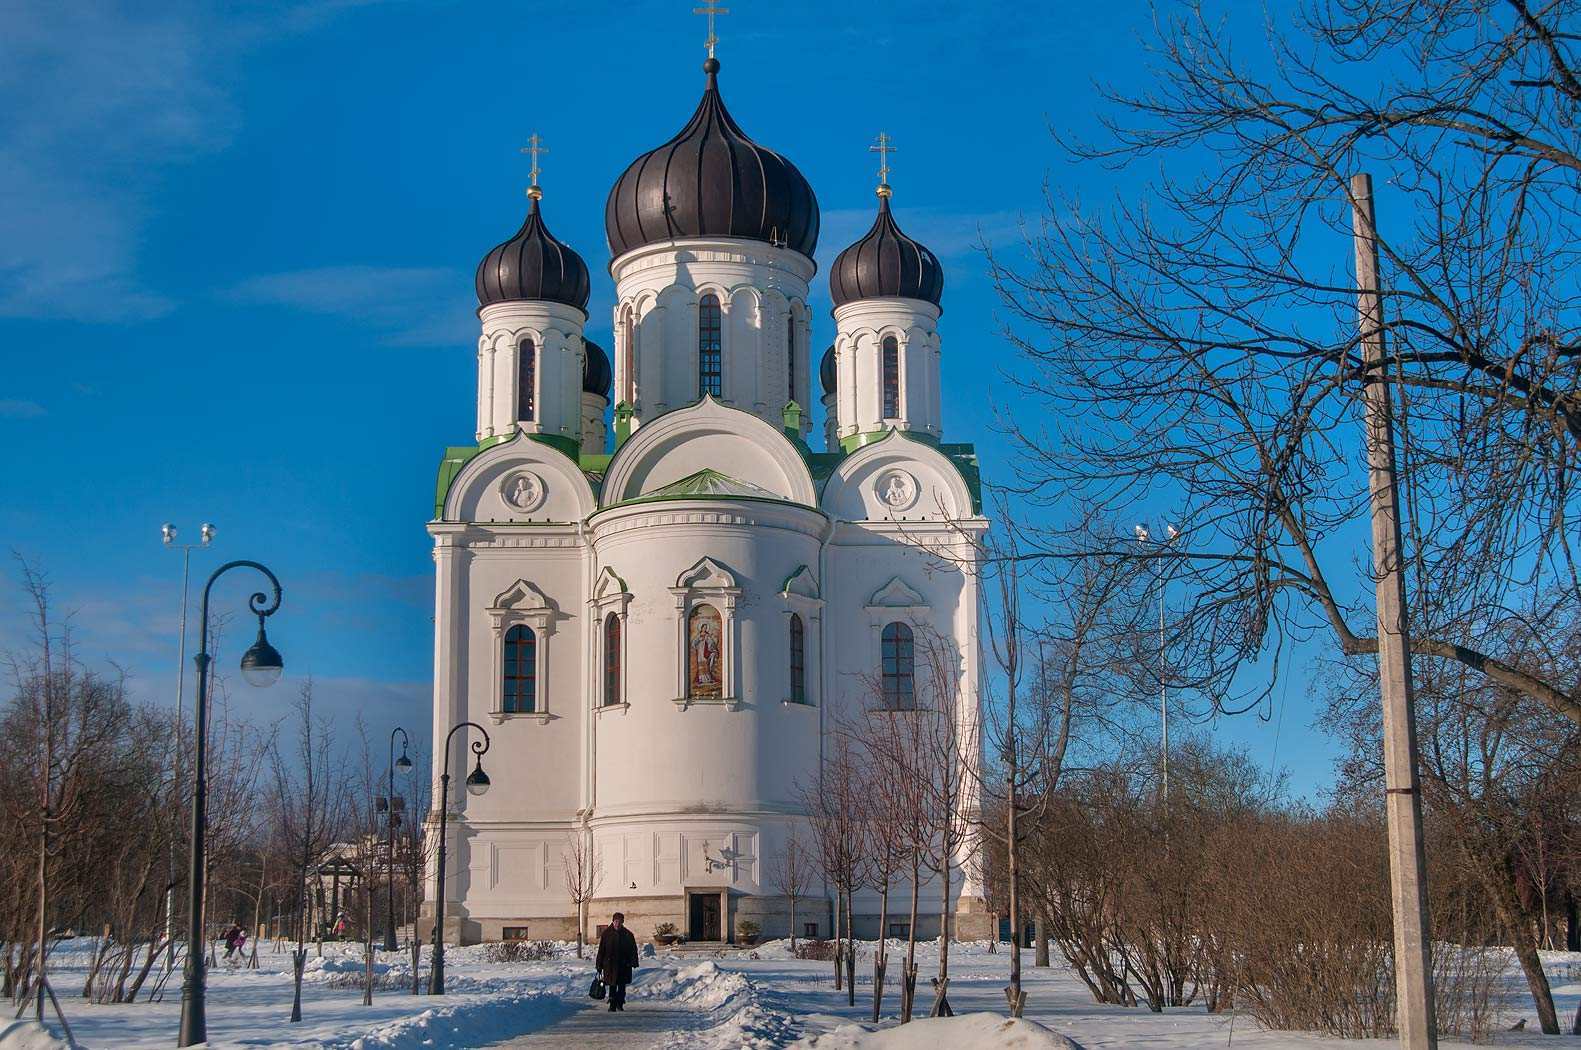 A church on central square that was built to...a suburb of St.Petersburg, Russia